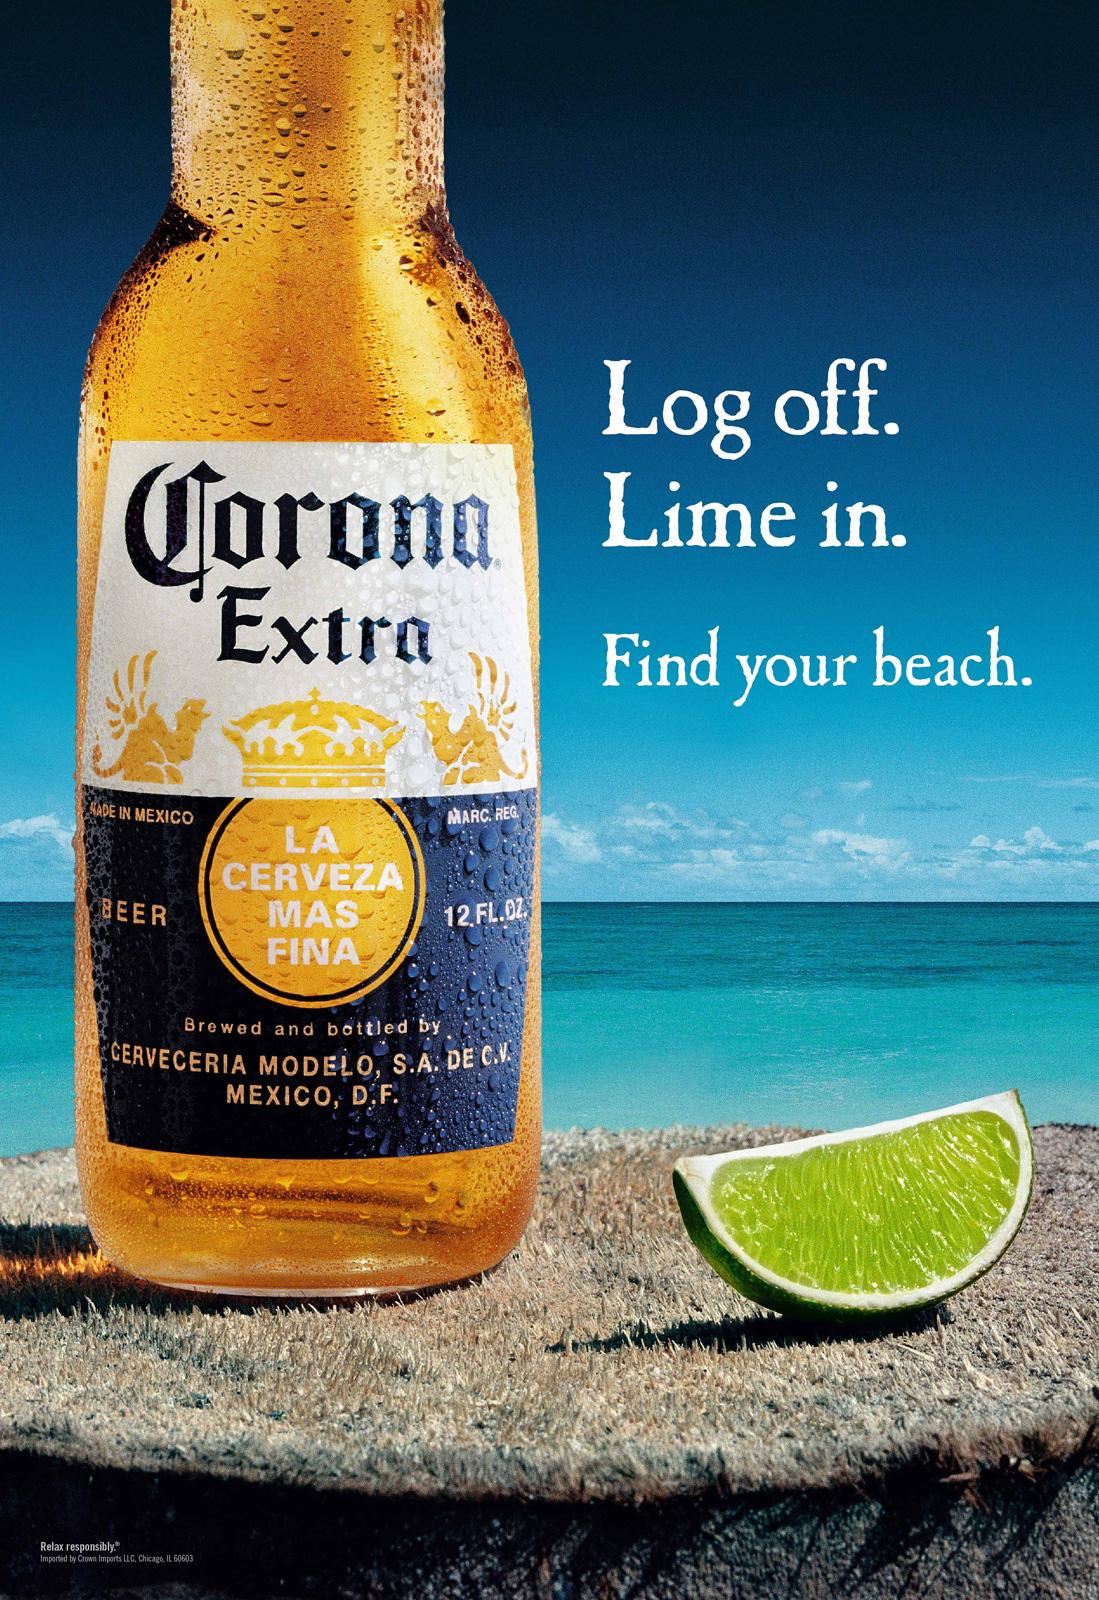 Corona Beer Outdoor Ad -  Log off